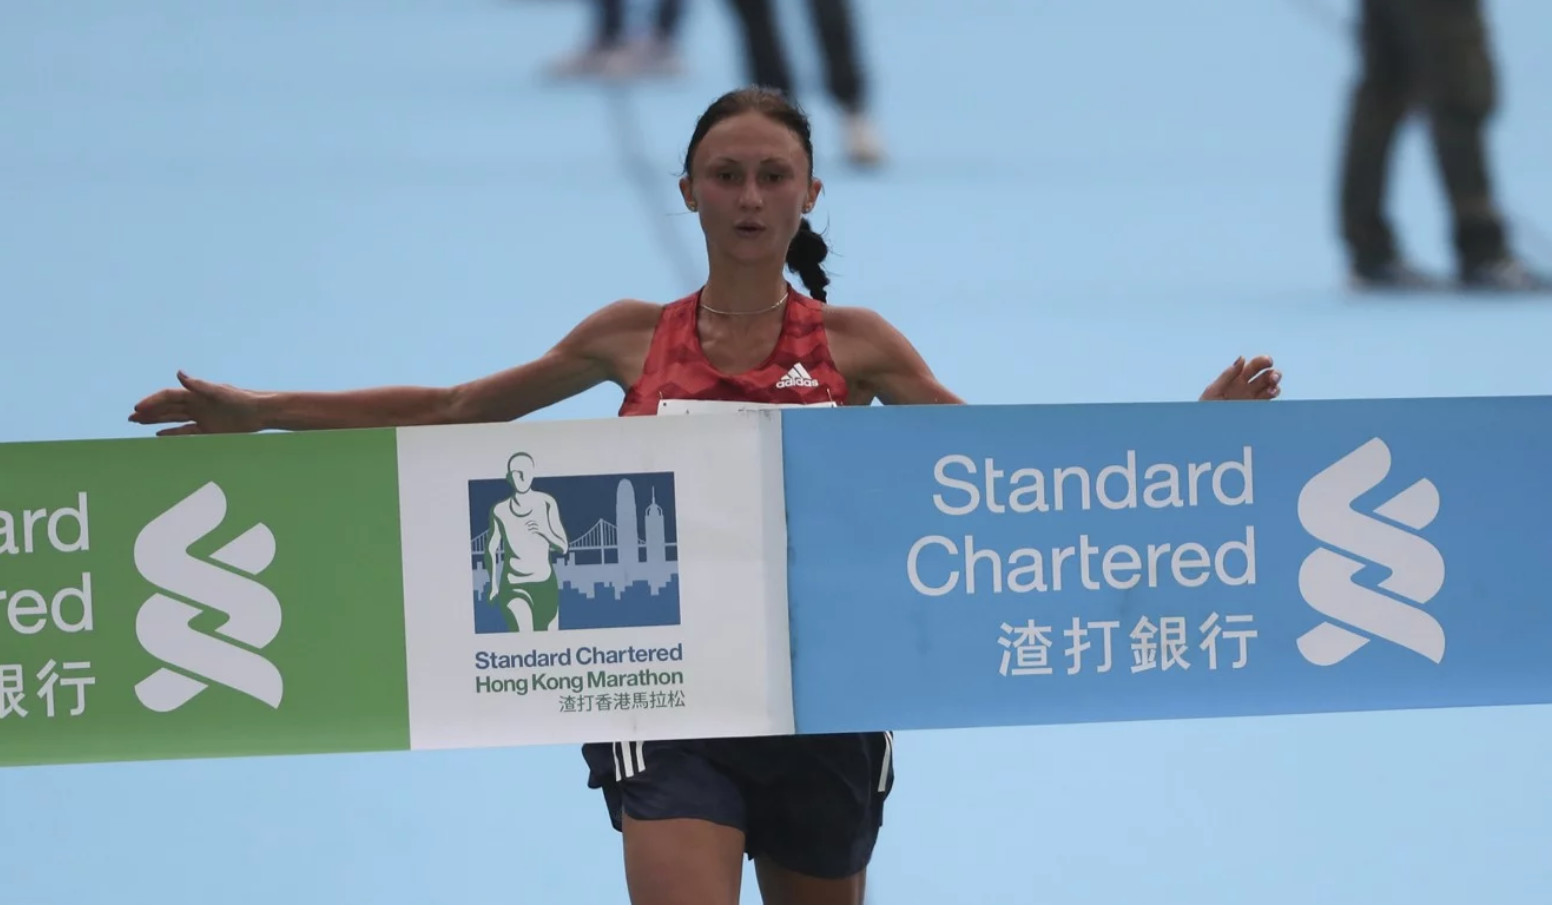 Volha Mazuronak of Belarus blew away the field at the Hong Kong Marathon winning by nearly four minutes